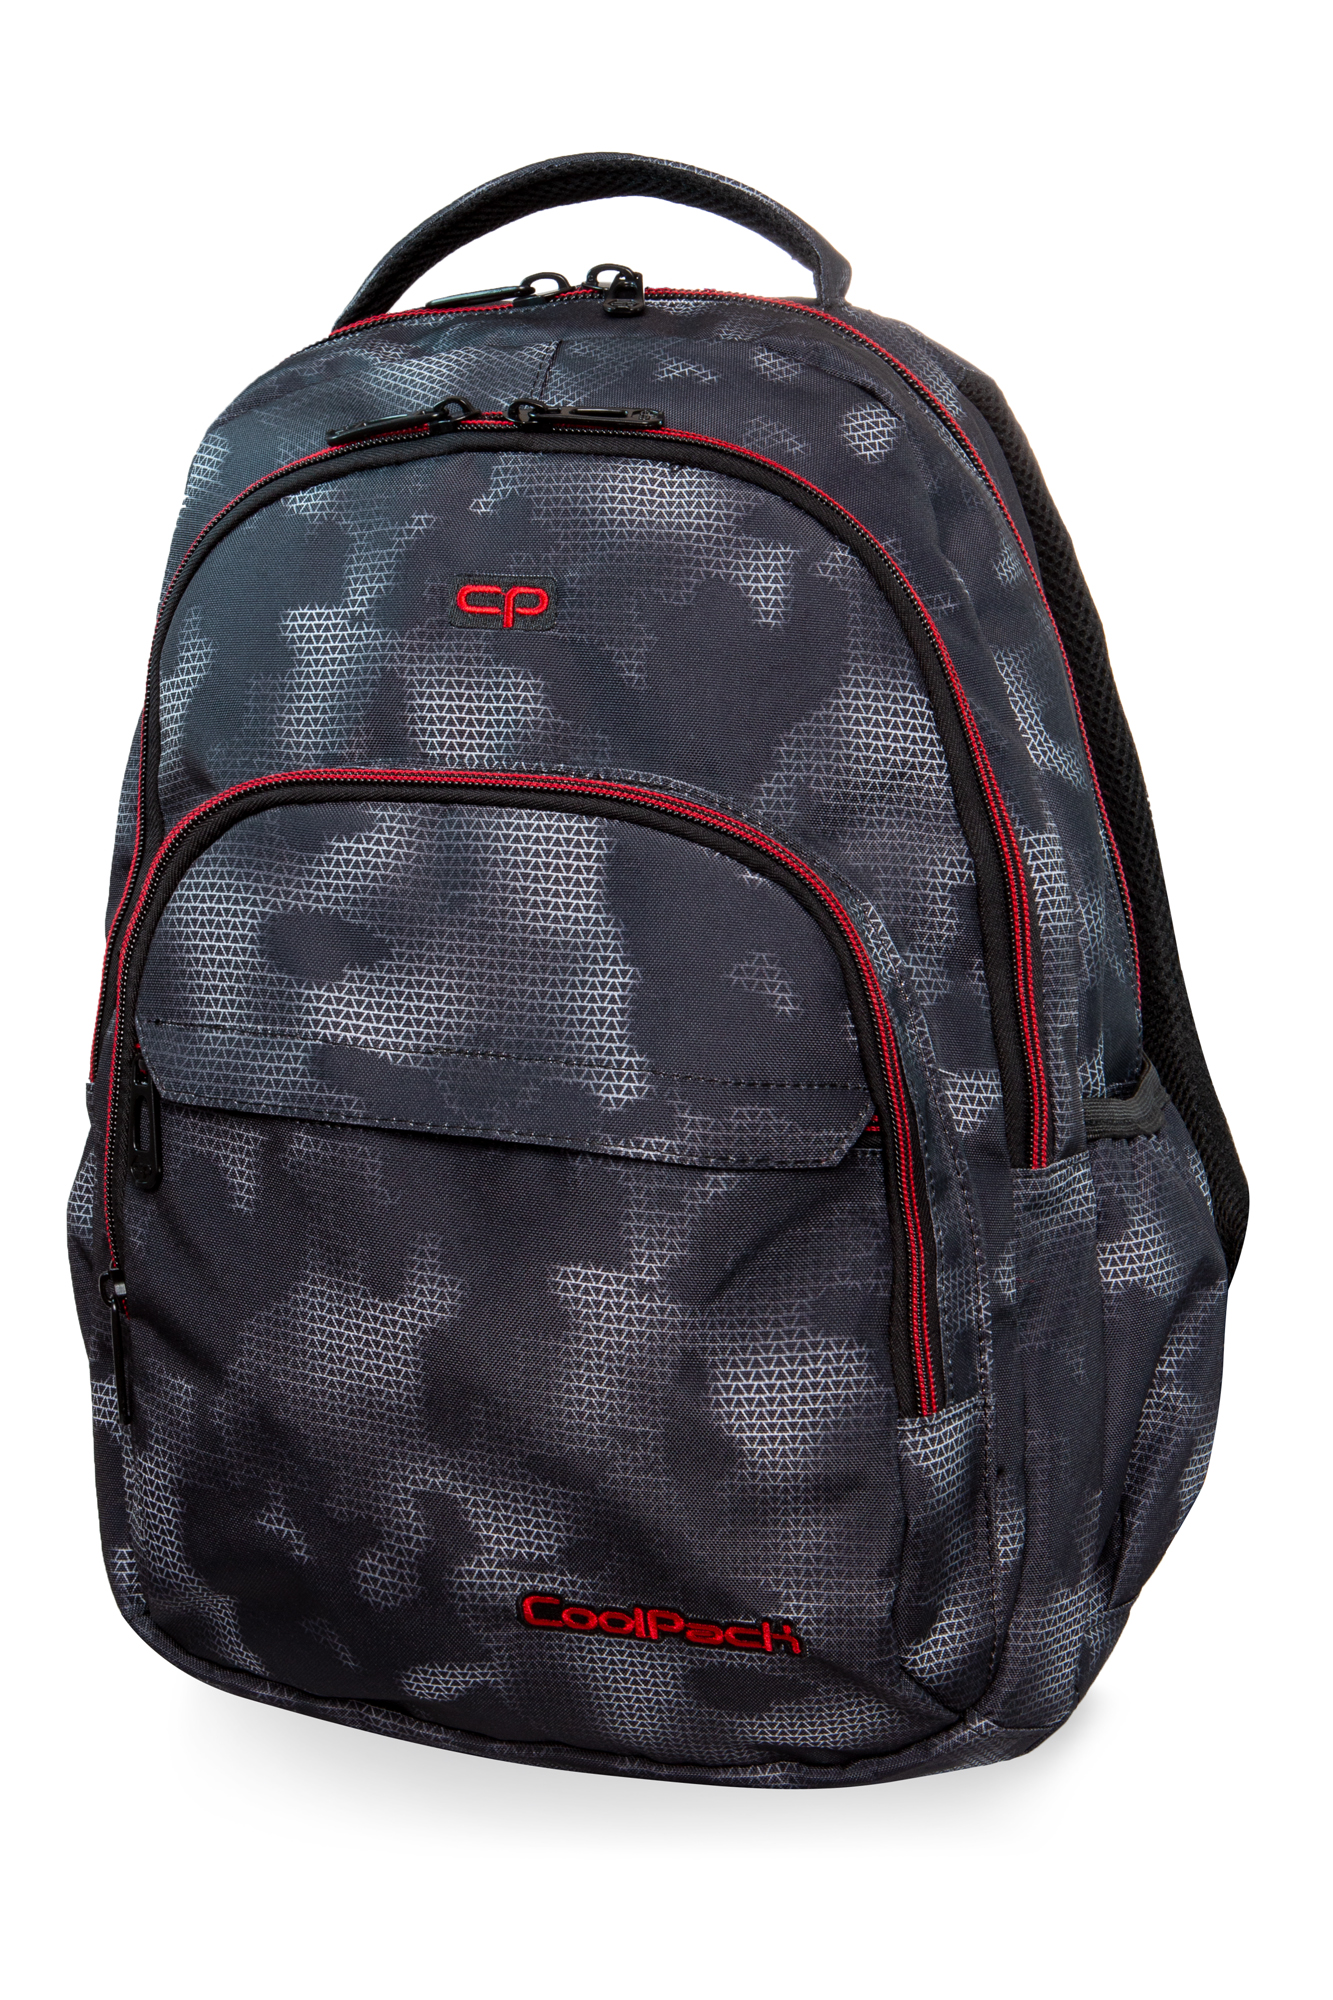 Coolpack - basic plus - youth backpack - misty red